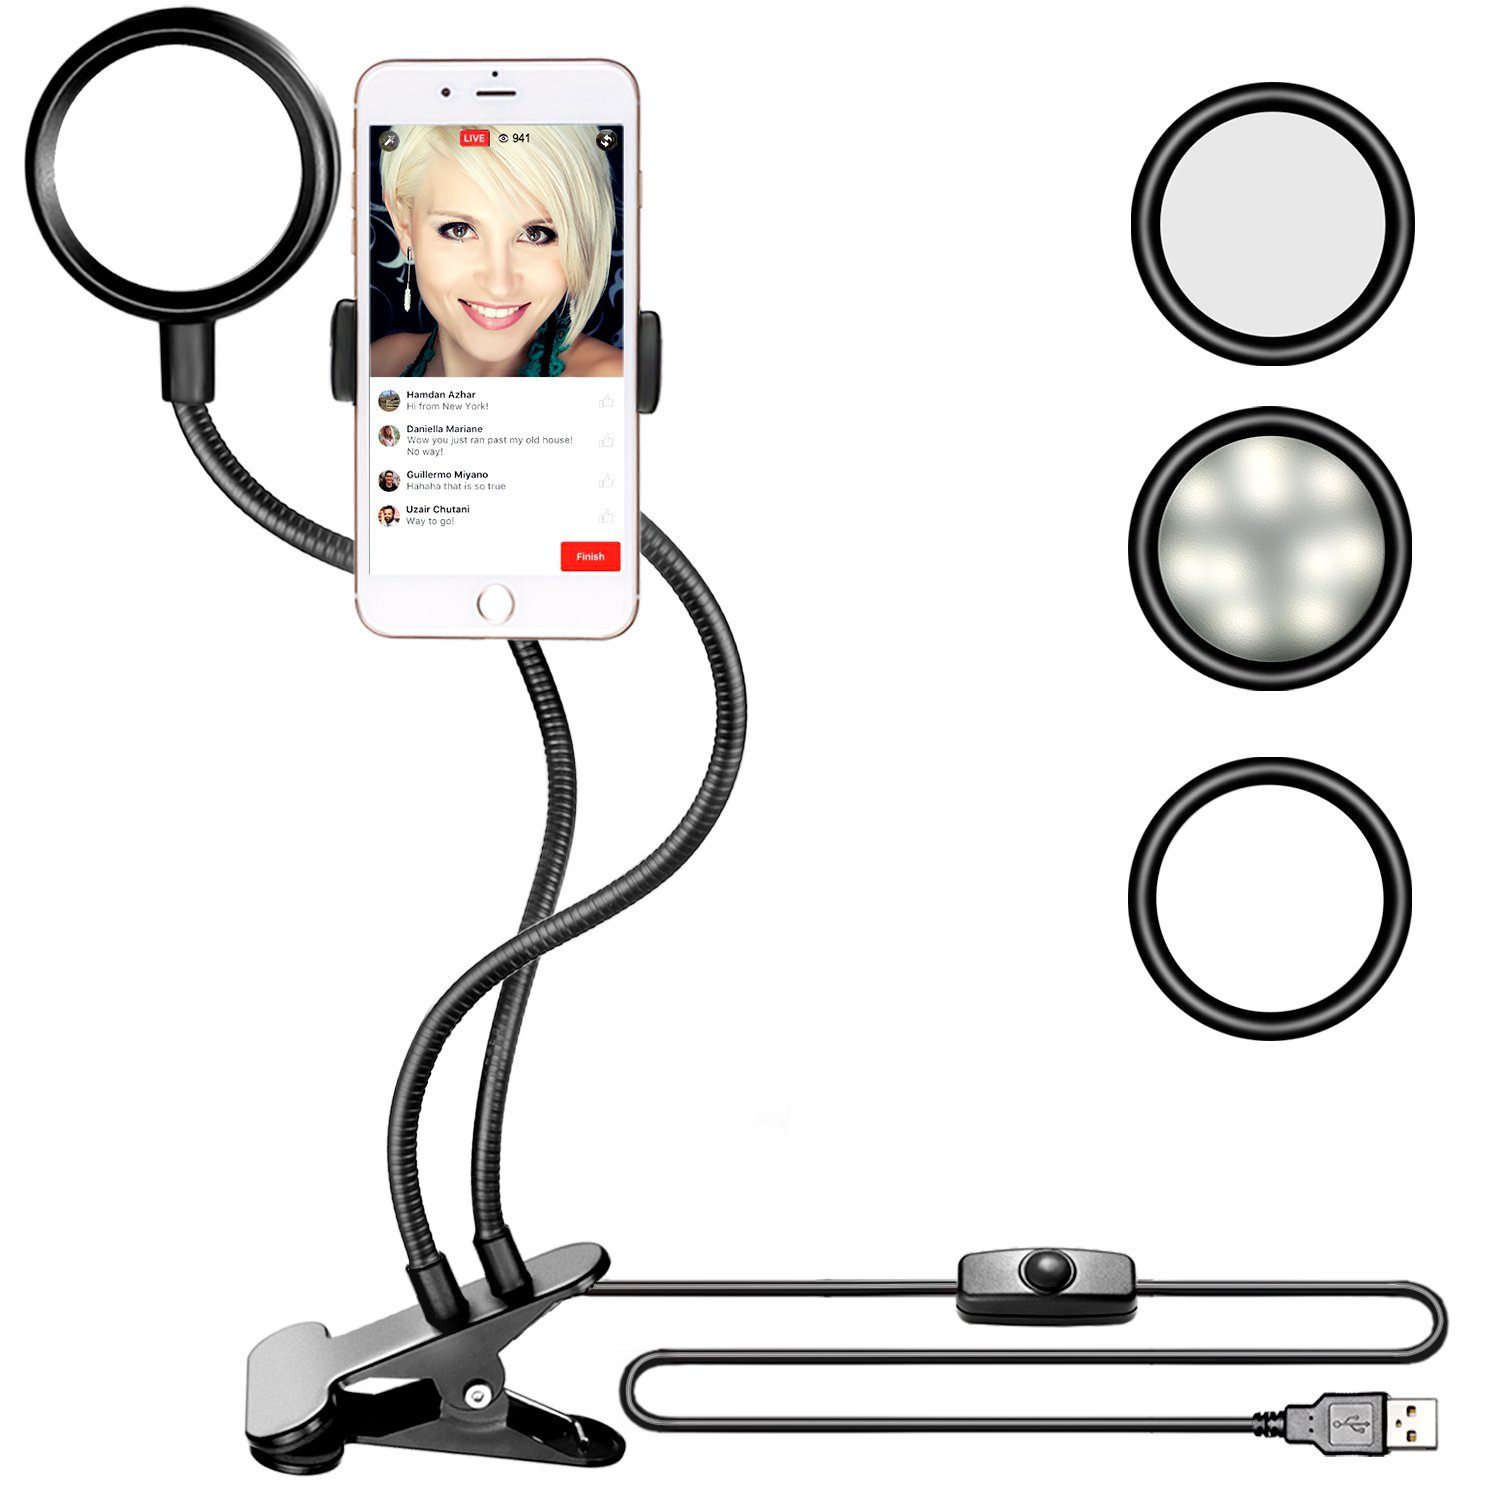 Neewer Clamp-on LED Selfie Ring Light with Cell Phone Holder for Live Stream, 3-Level Brightness, 360 Degree Rotating Flexible Long Arms Gooseneck Mount for YouTube,Facebook,iPhone8/7/6S,Samsung,HTC